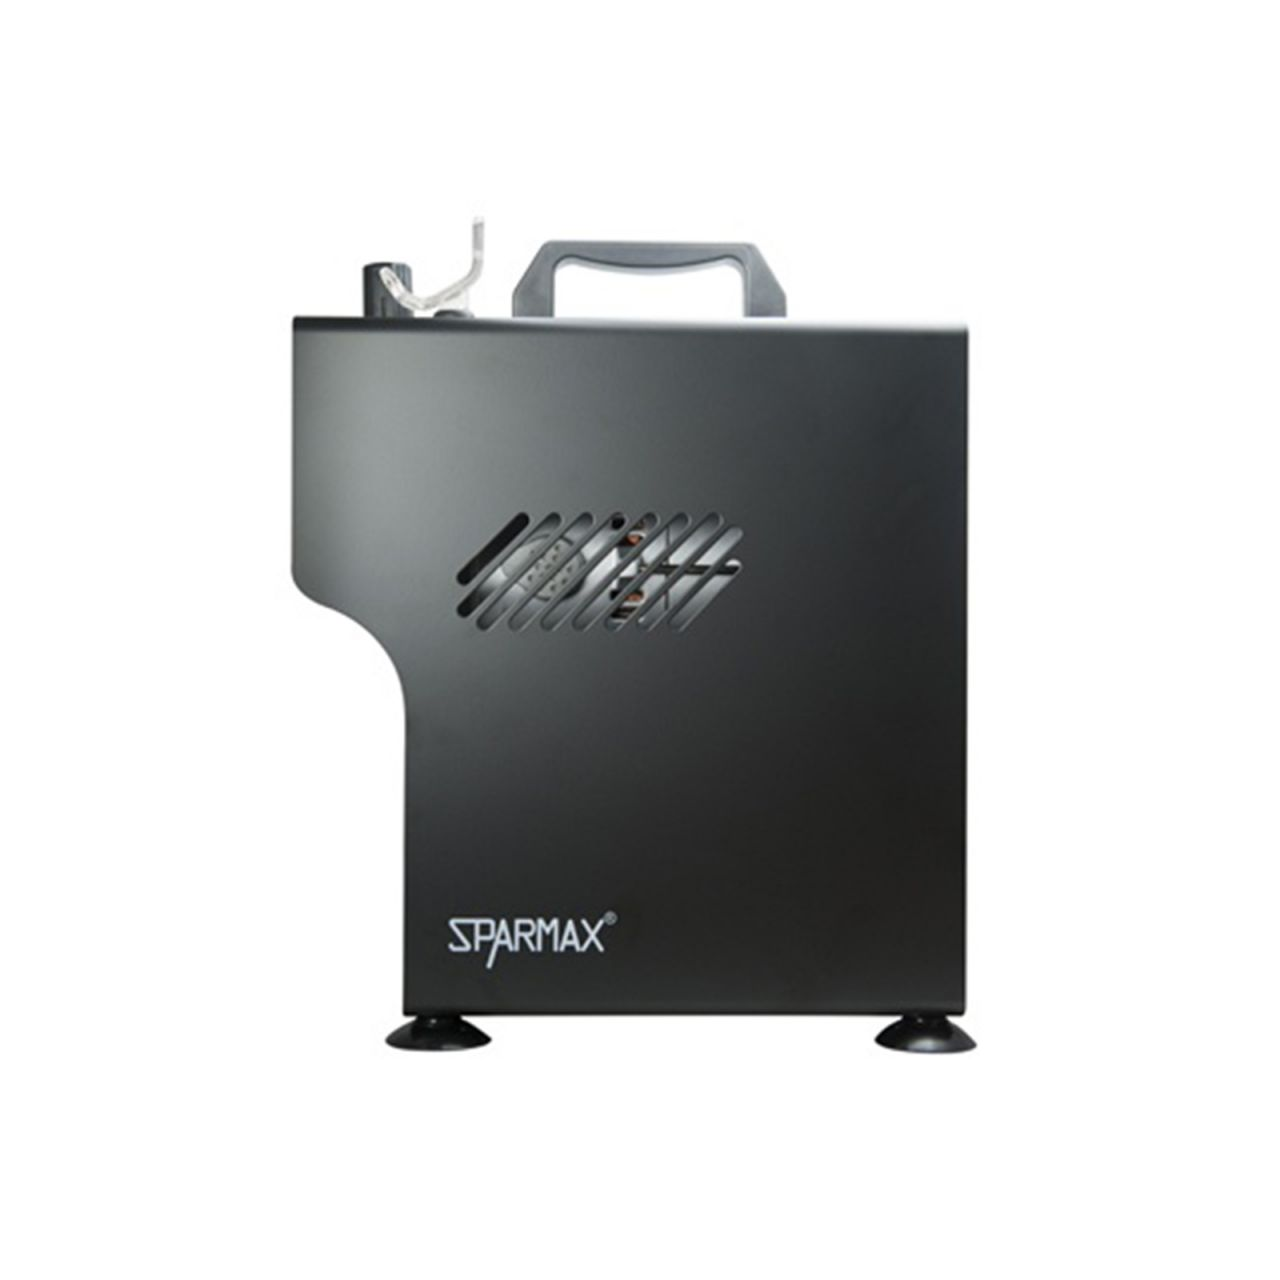 Sparmax HS-160010 TC 610H Compressor with Tank